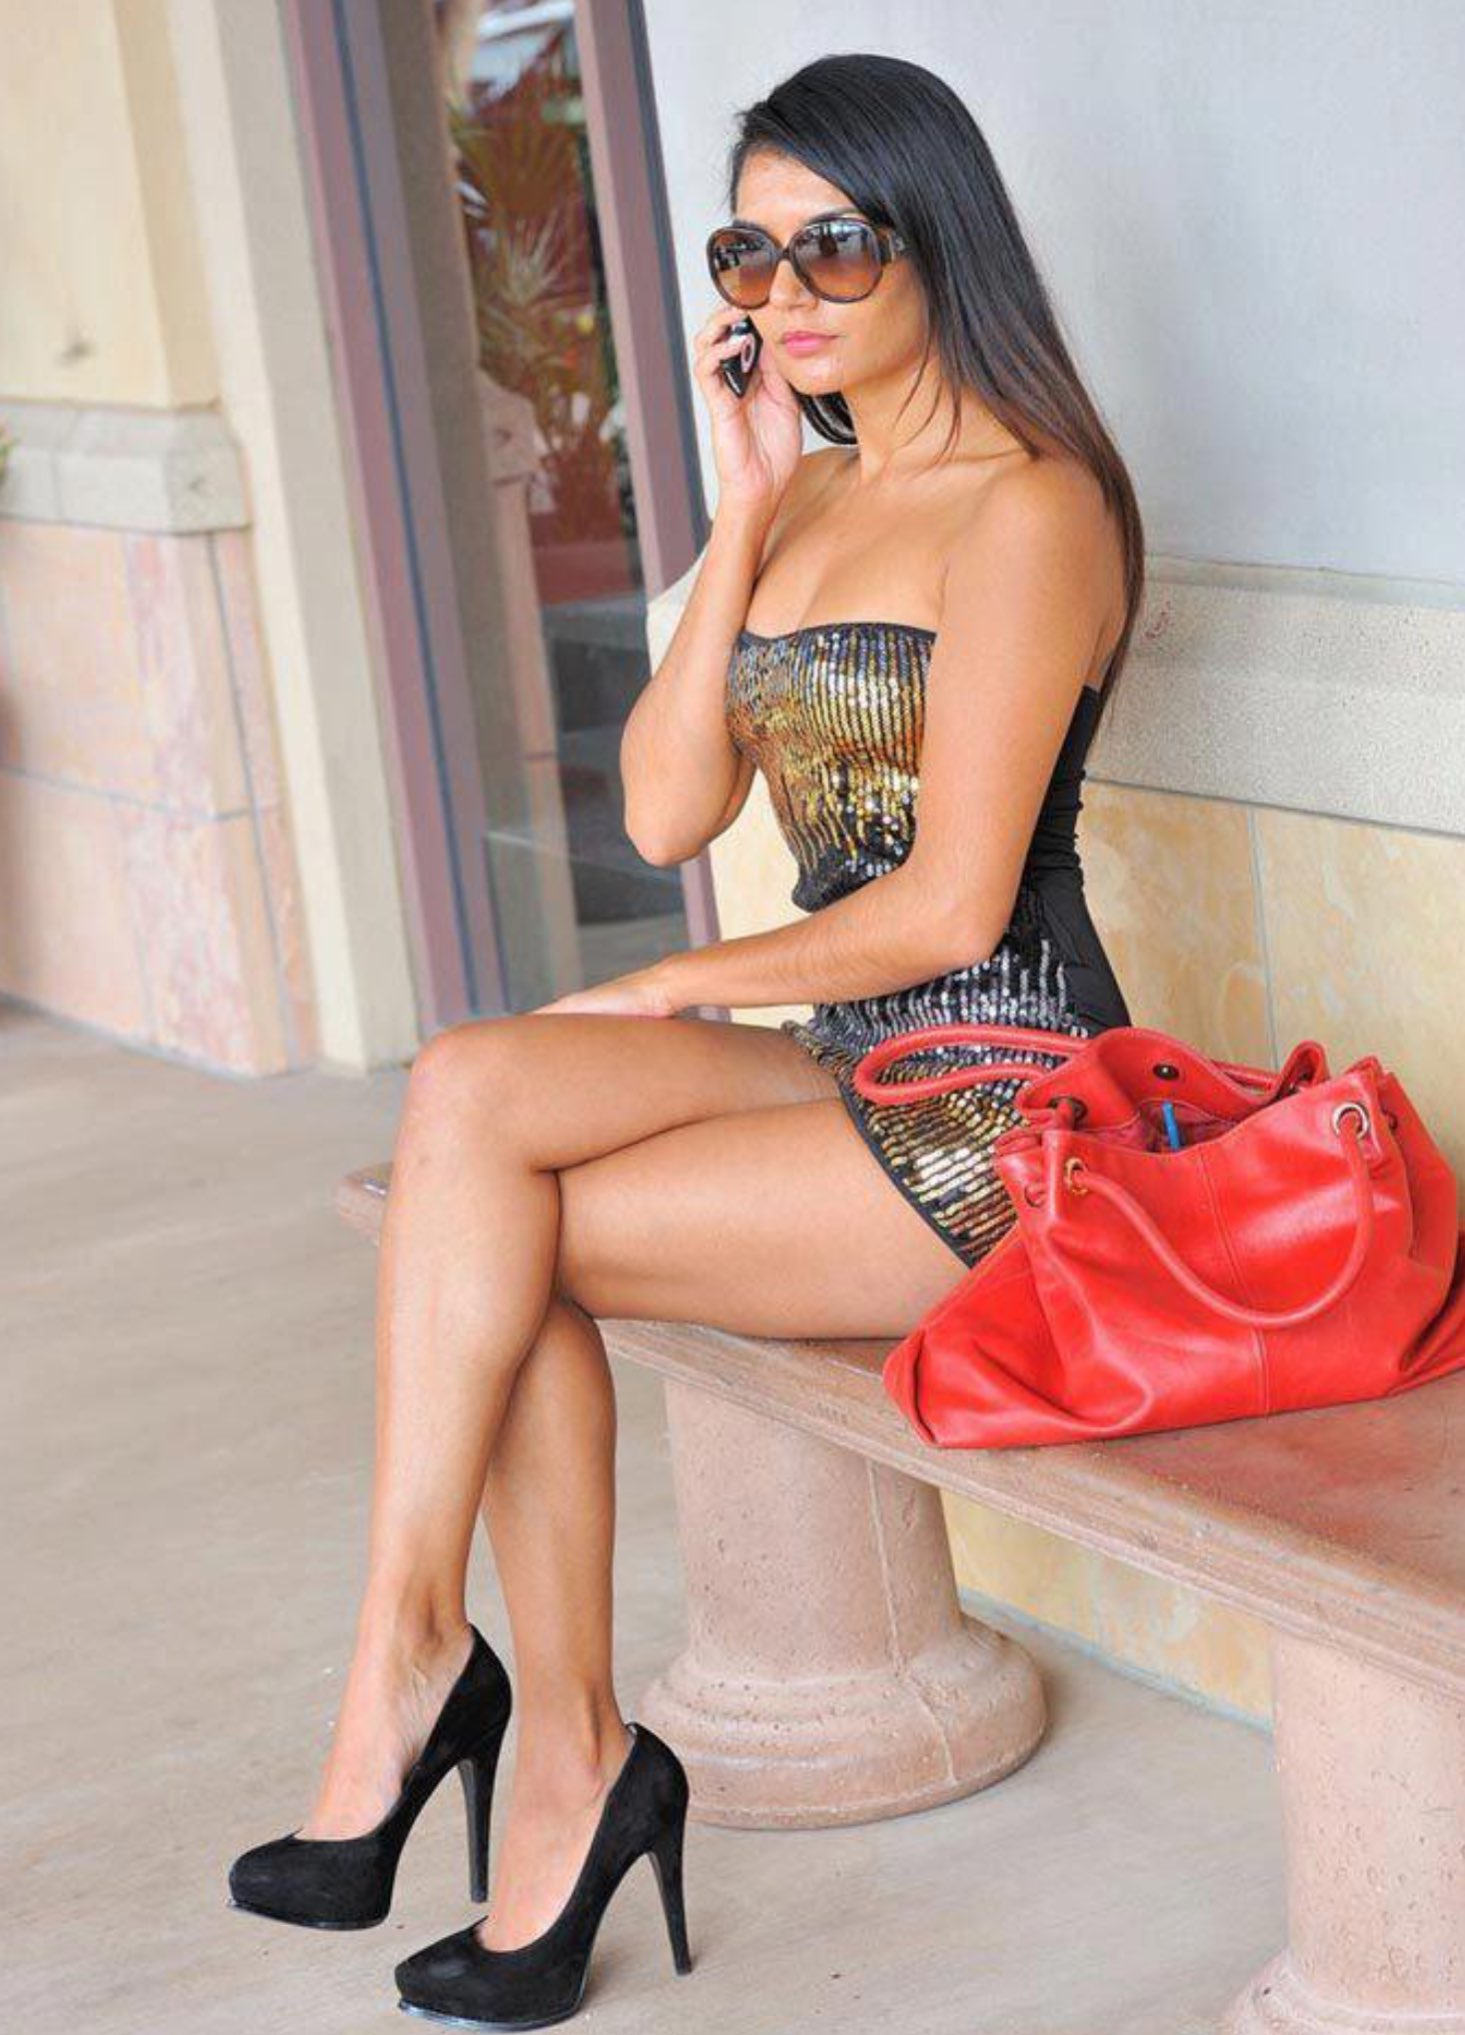 malin latino personals Add real latin rythmn to your love life at latinsinglesnetworkcom meet fun and exciting latino singles who are looking for dating, friendship, and romance your free profile with up to 10 photos gets you started fast and easy.